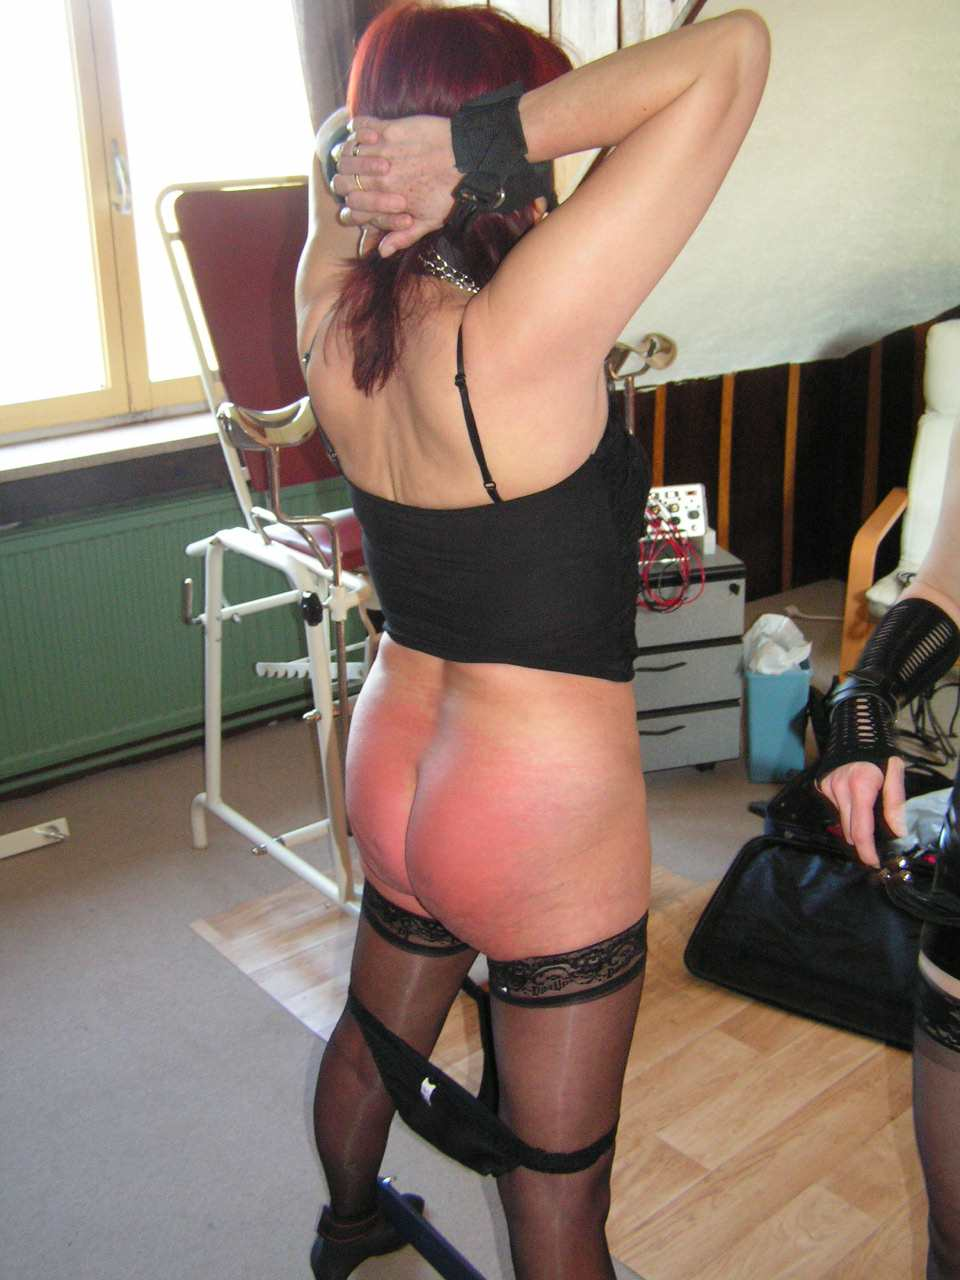 Tied up milf punished with objects